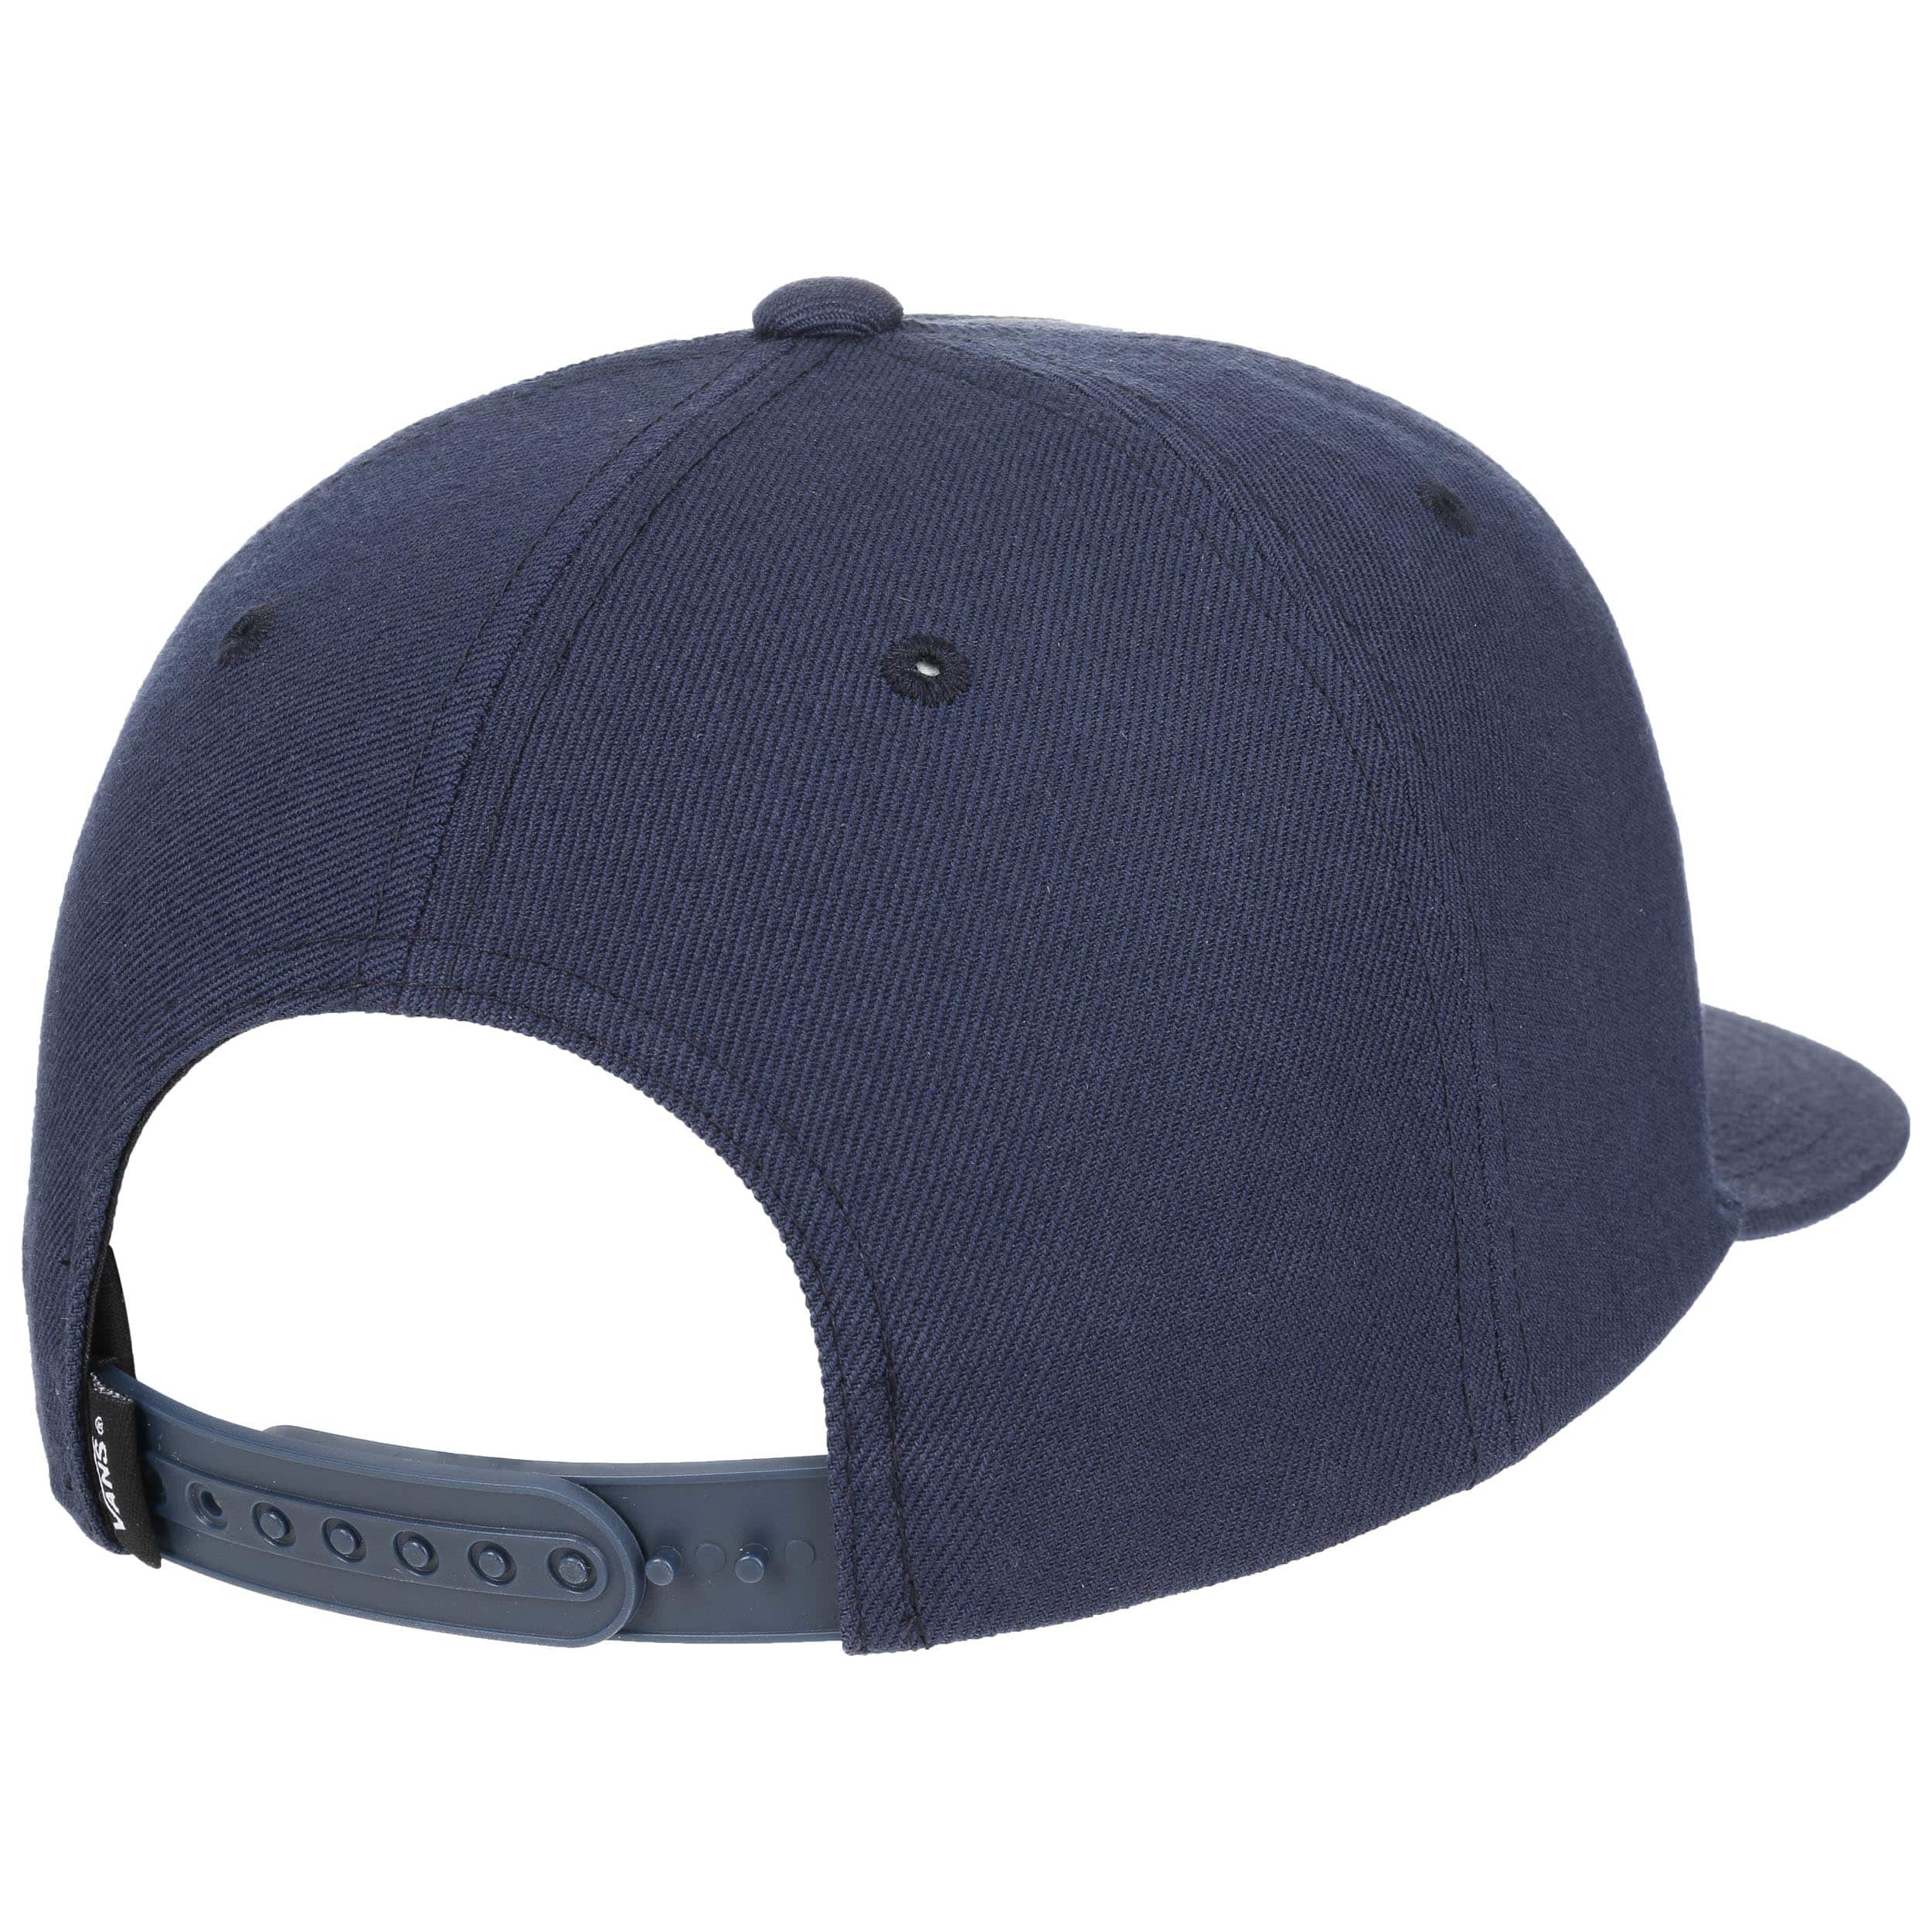 dbf115477028 ... Classic Patch Snapback Cap by Vans - navy 3 ...